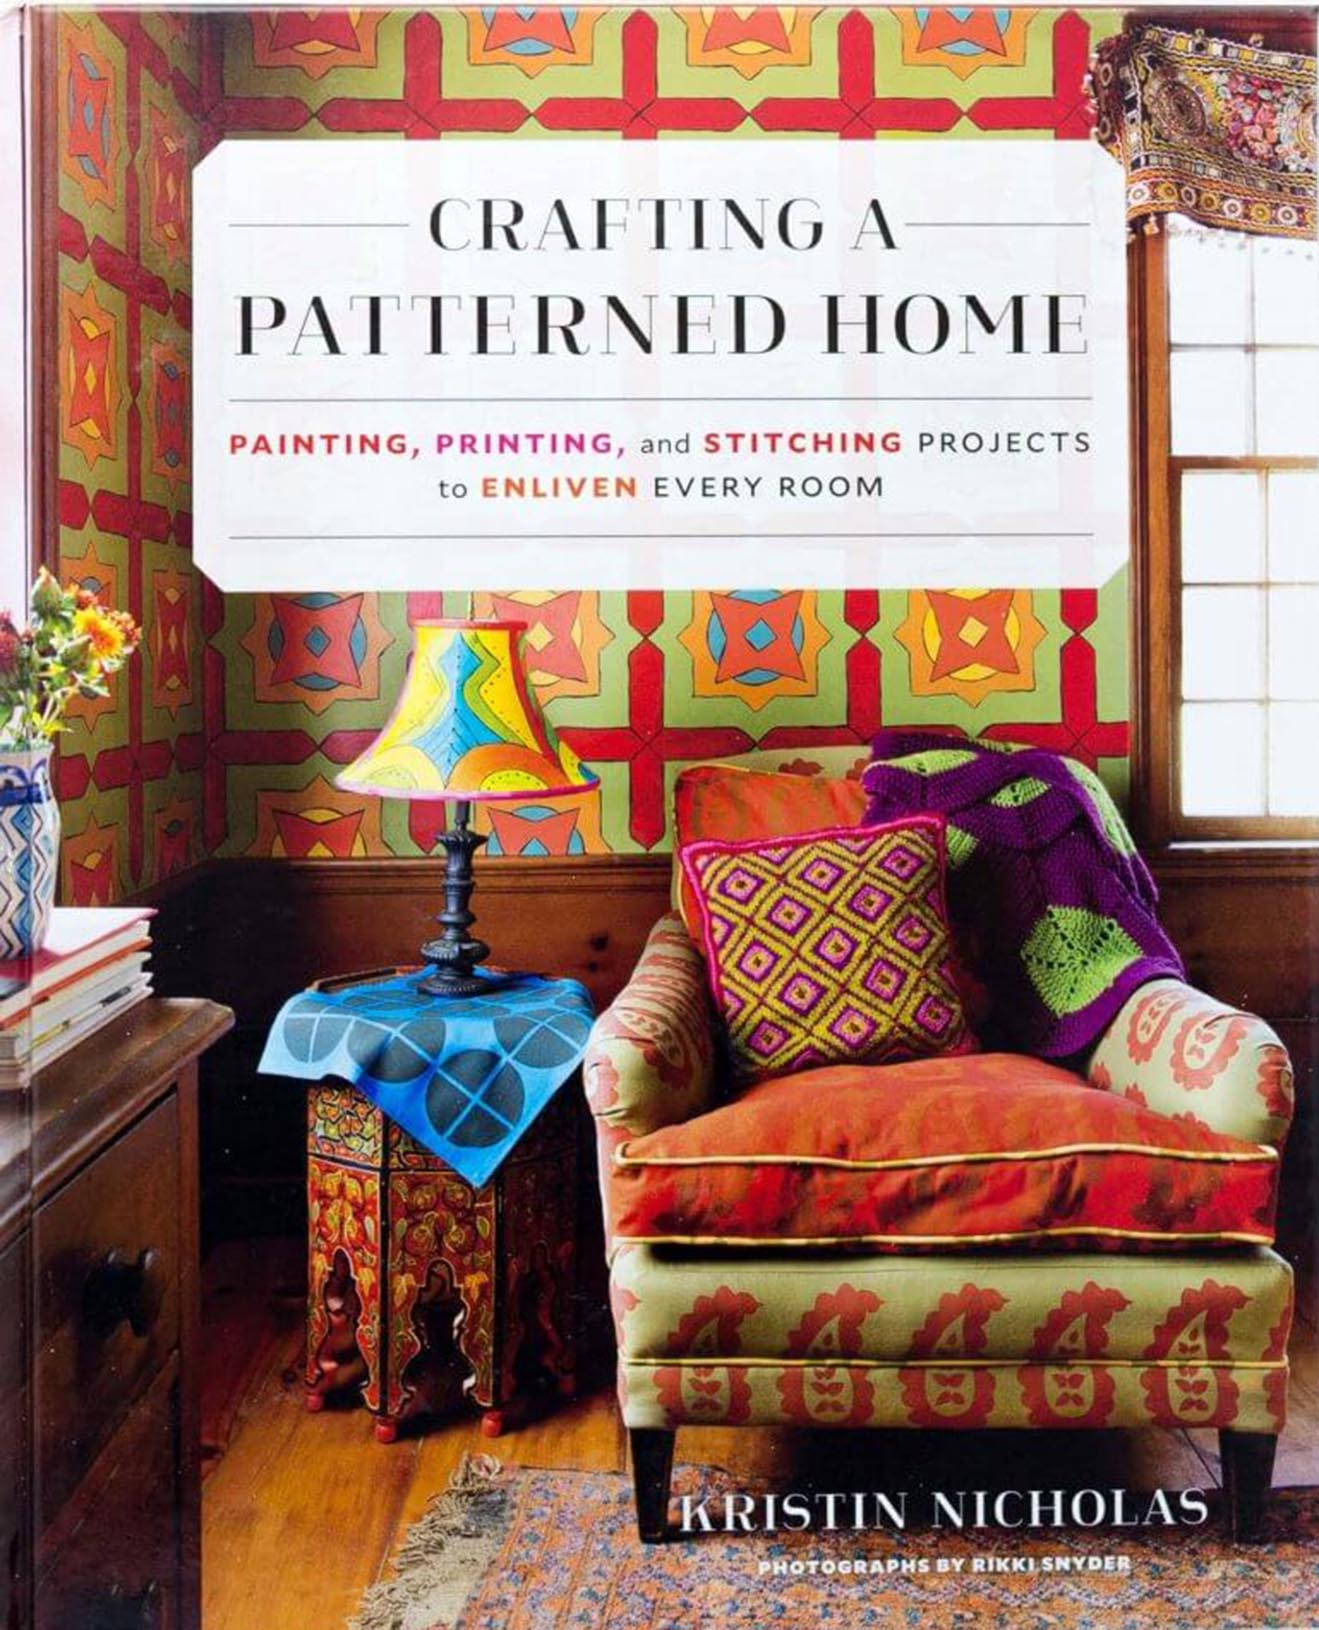 CRAFTING A PATTERNED HOME: Painting, Printing, and Stitching Projects to Enliven Every Room by Kristin Nicholas